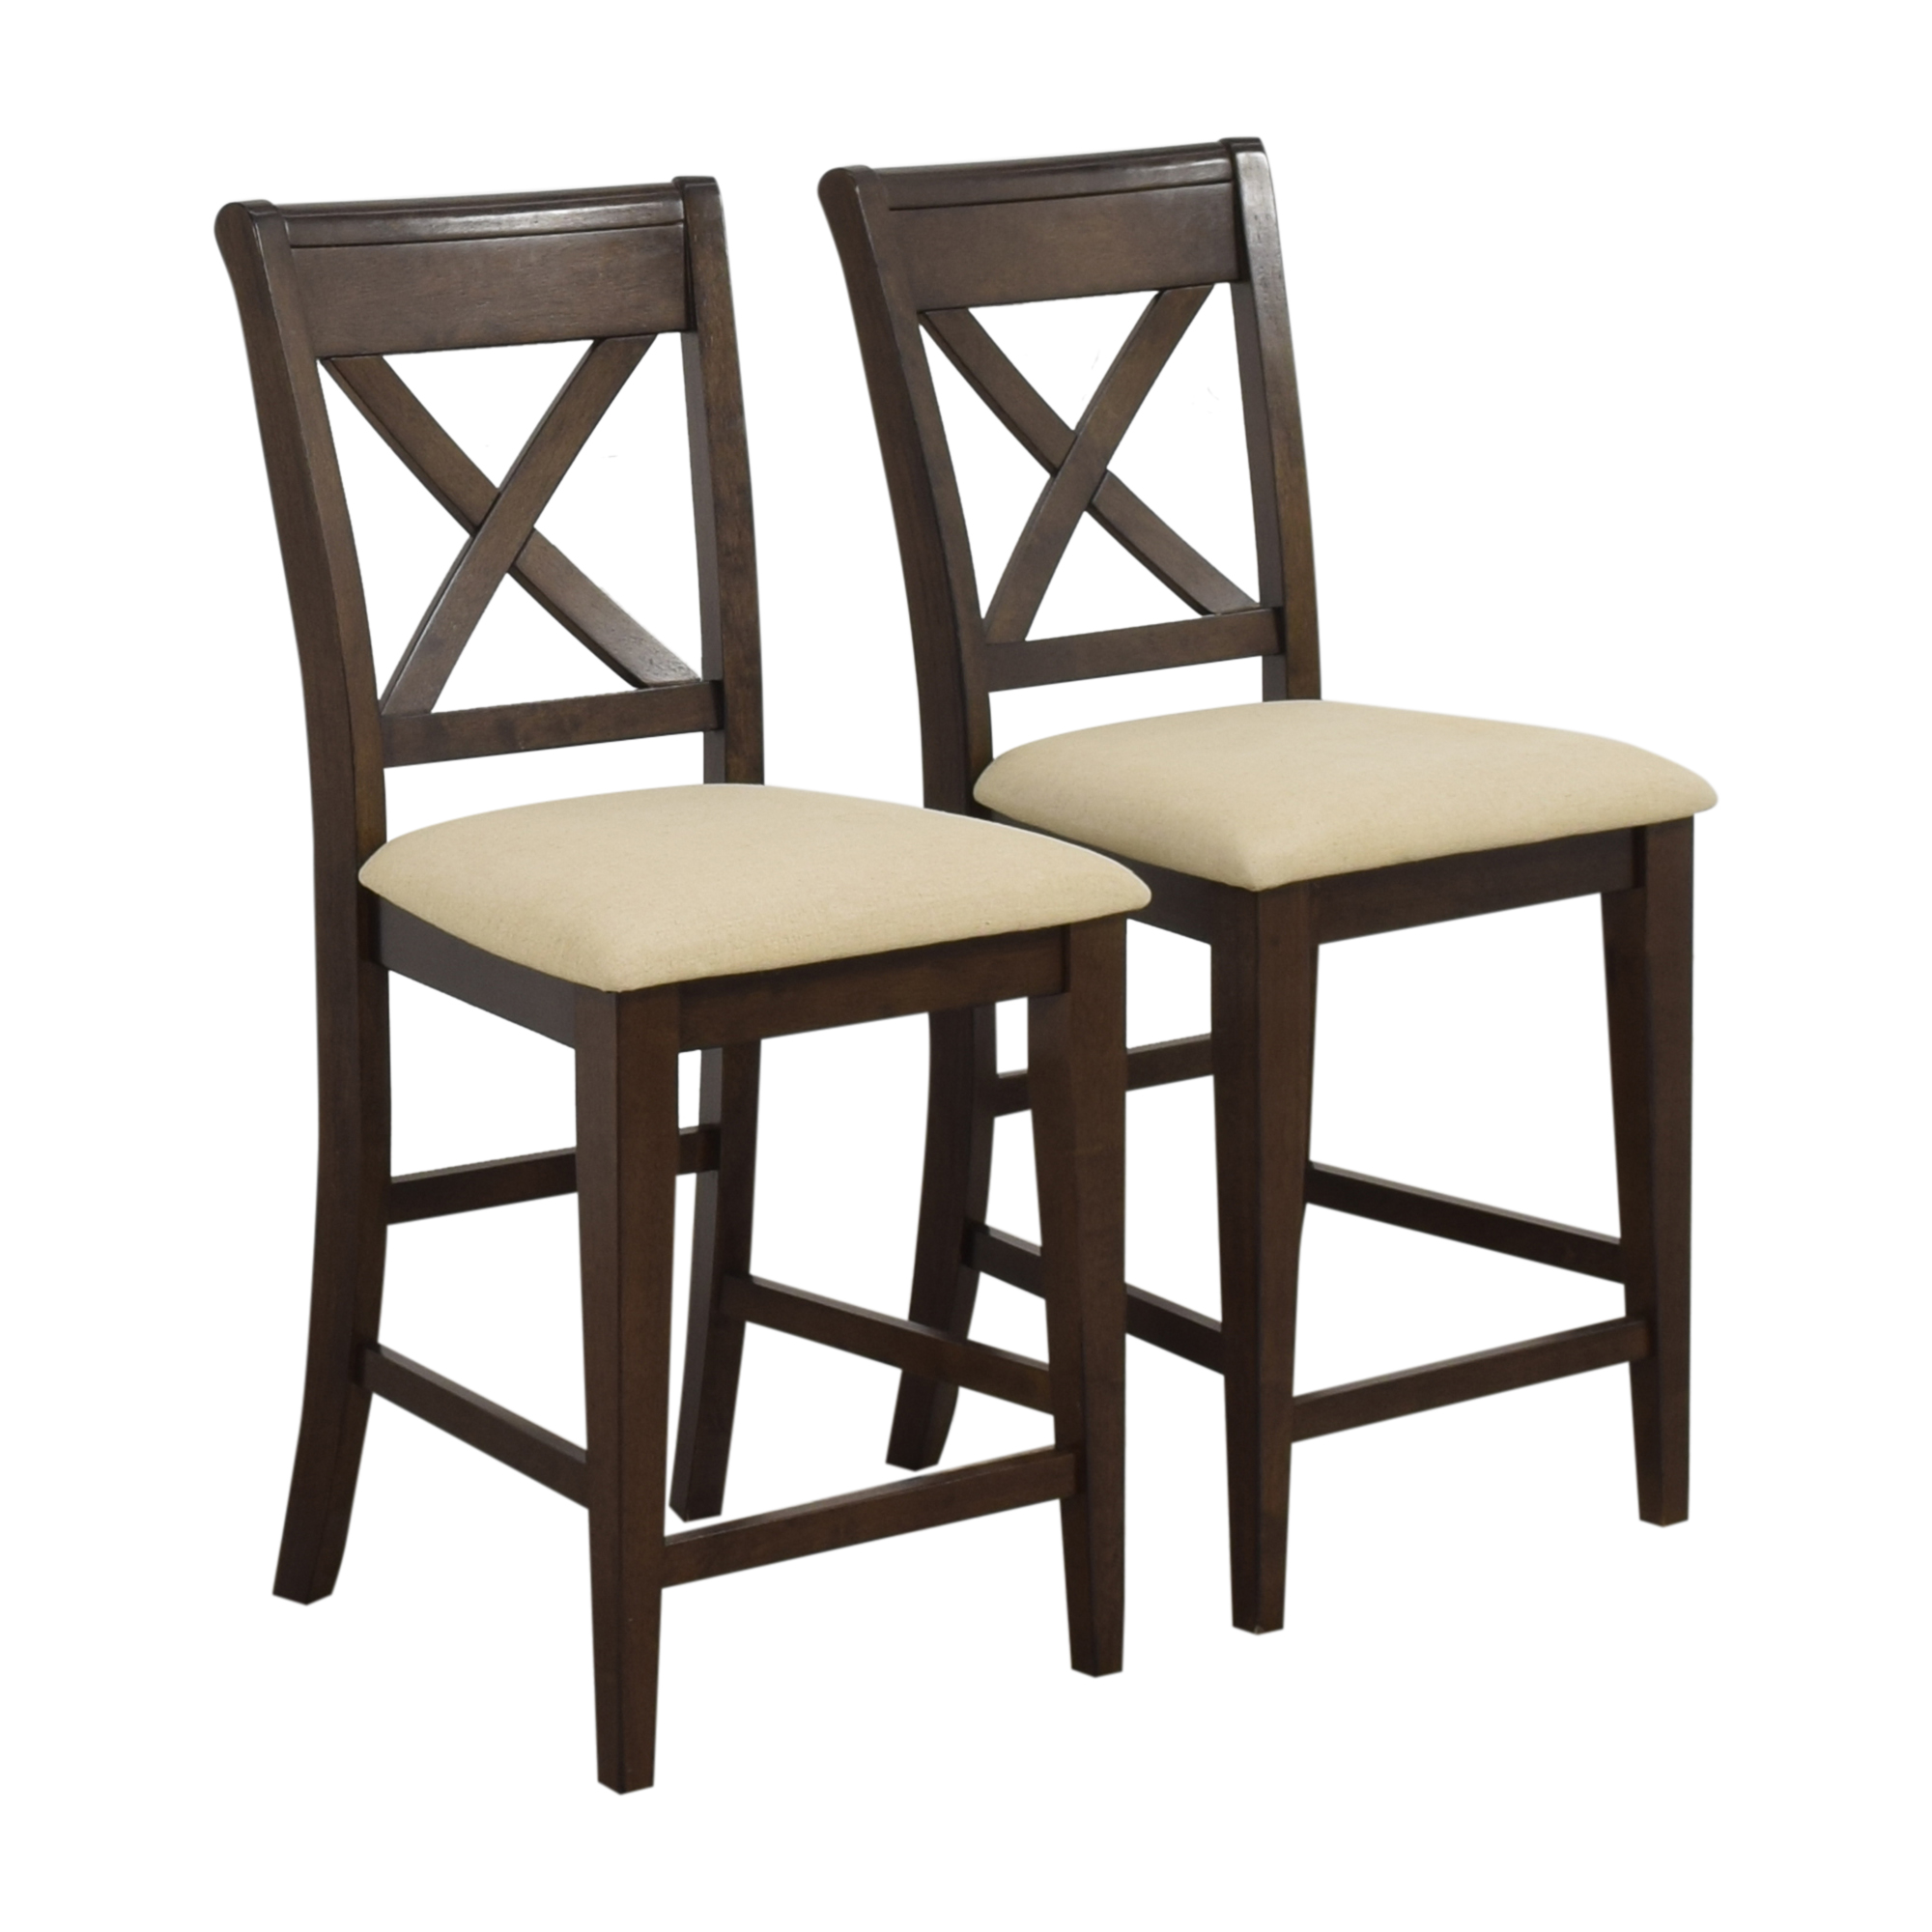 Raymour & Flanigan Raymour & Flanigan Upholstered Stools discount